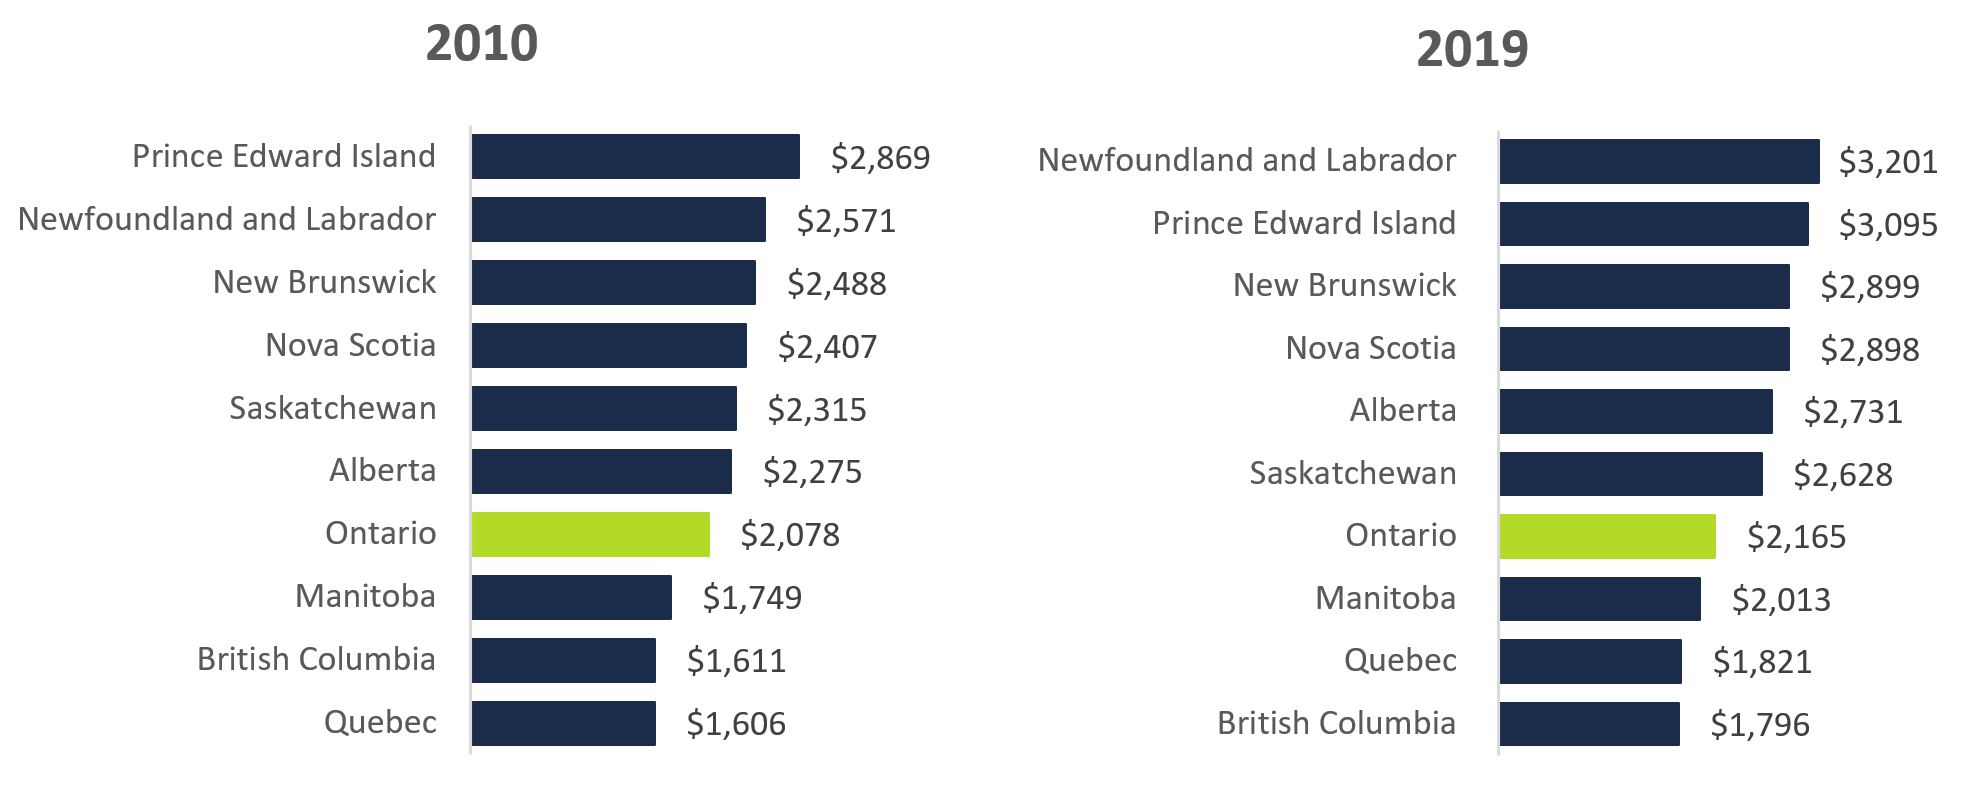 Average household home energy spending by province, 2010 and 2019